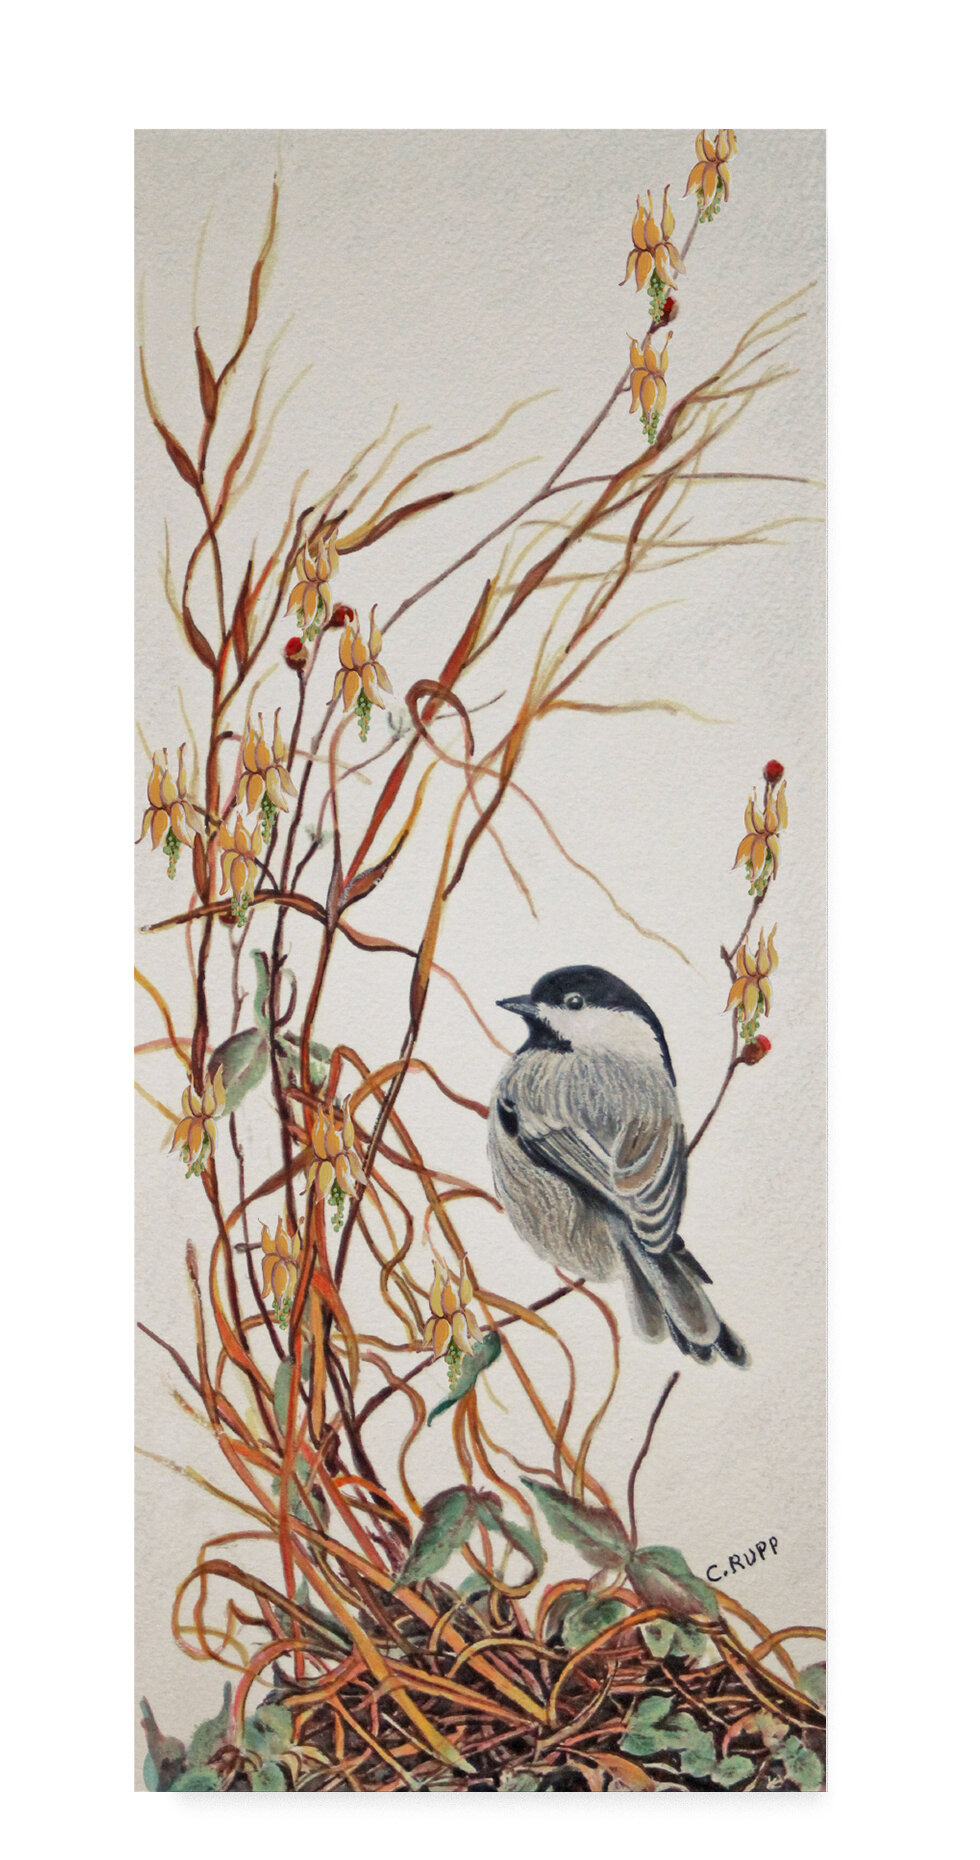 Charlton Home Chickadee In Summer Grass Acrylic Painting Print On Wrapped Canvas Wayfair